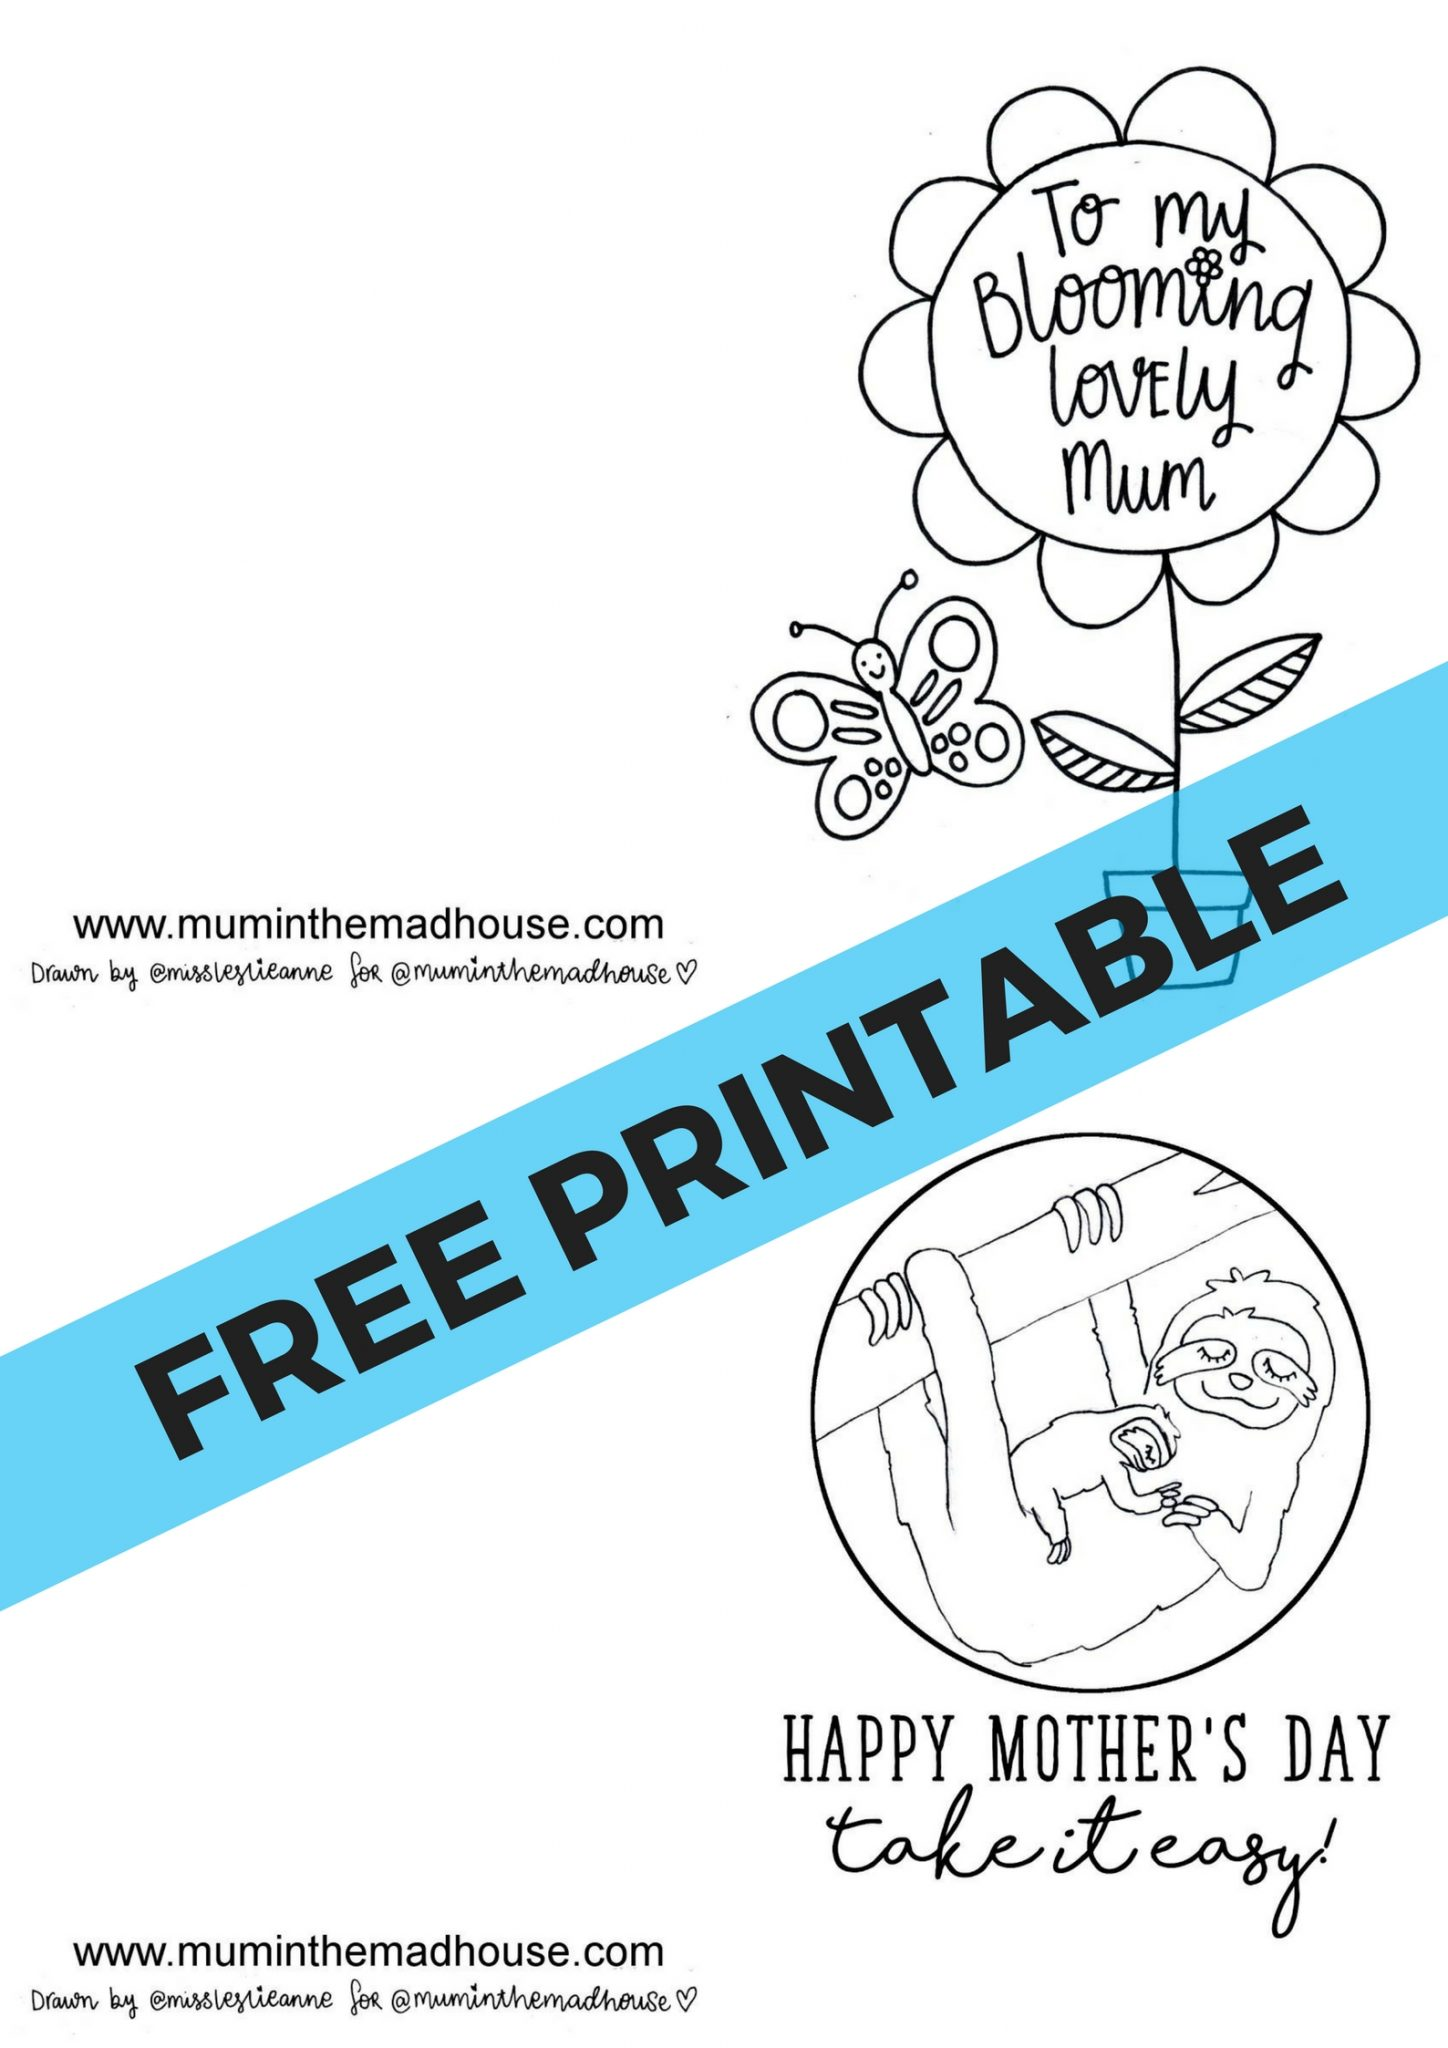 Mothers day coloring pages disney - Stunning Free Printable Mothers Day Cards To Colour 2 Free Brilliant Cards To Download For